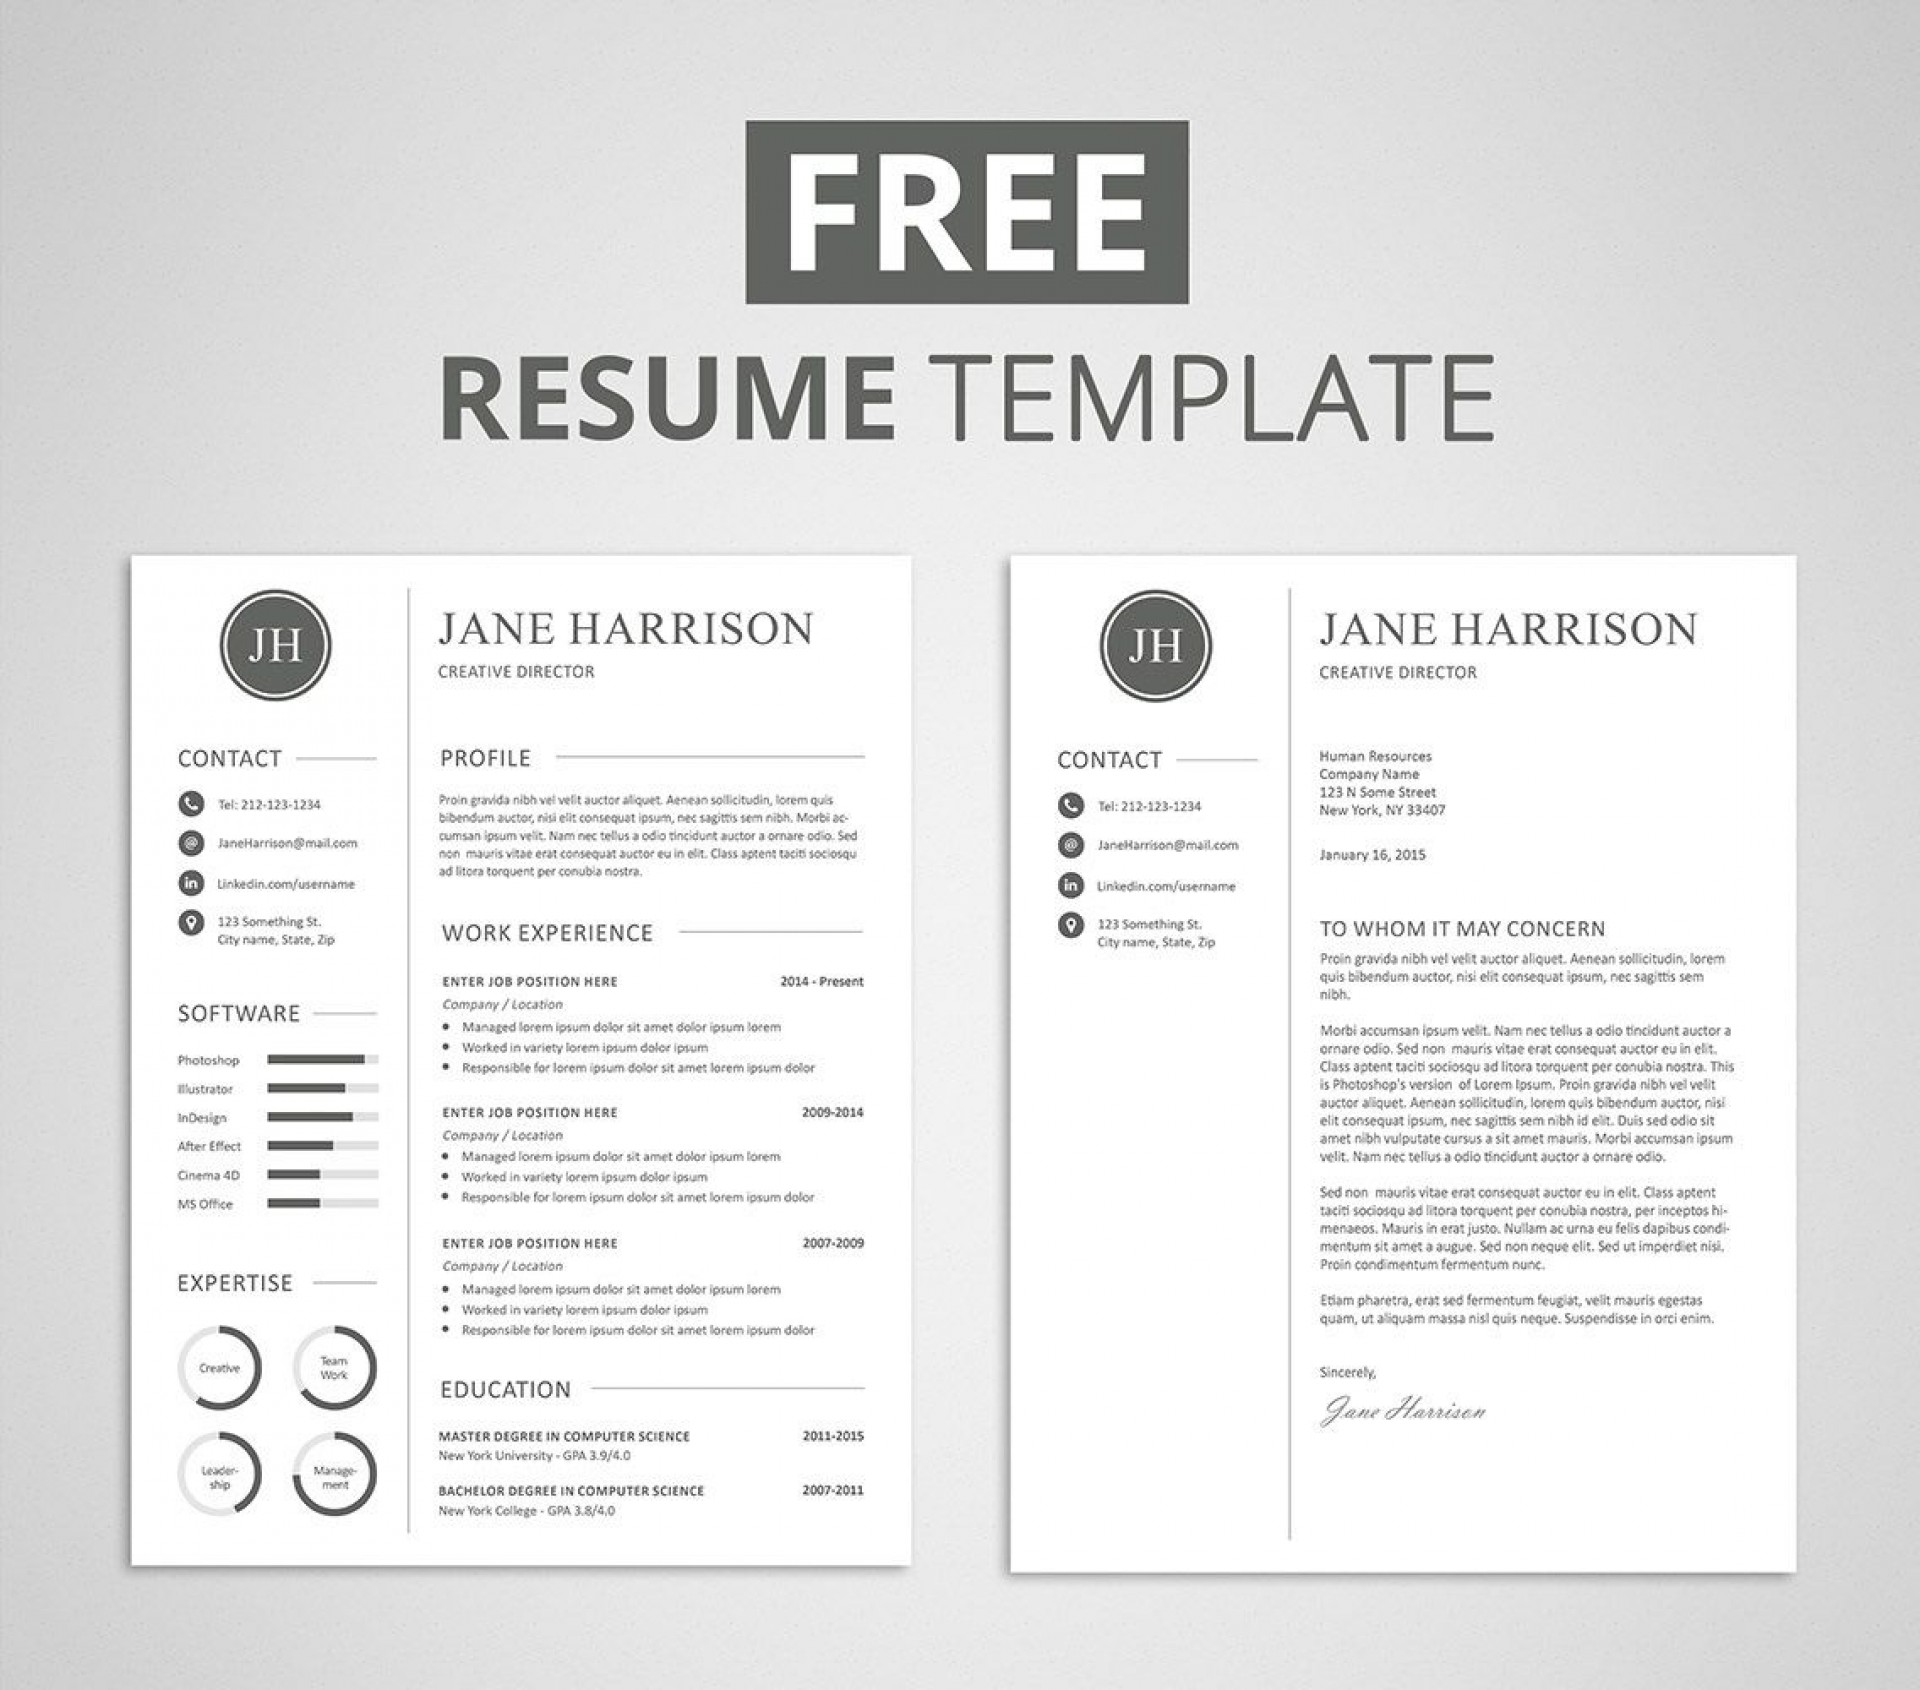 009 Unforgettable Resume Cover Letter Template Free High Def  Simple Online Microsoft1920